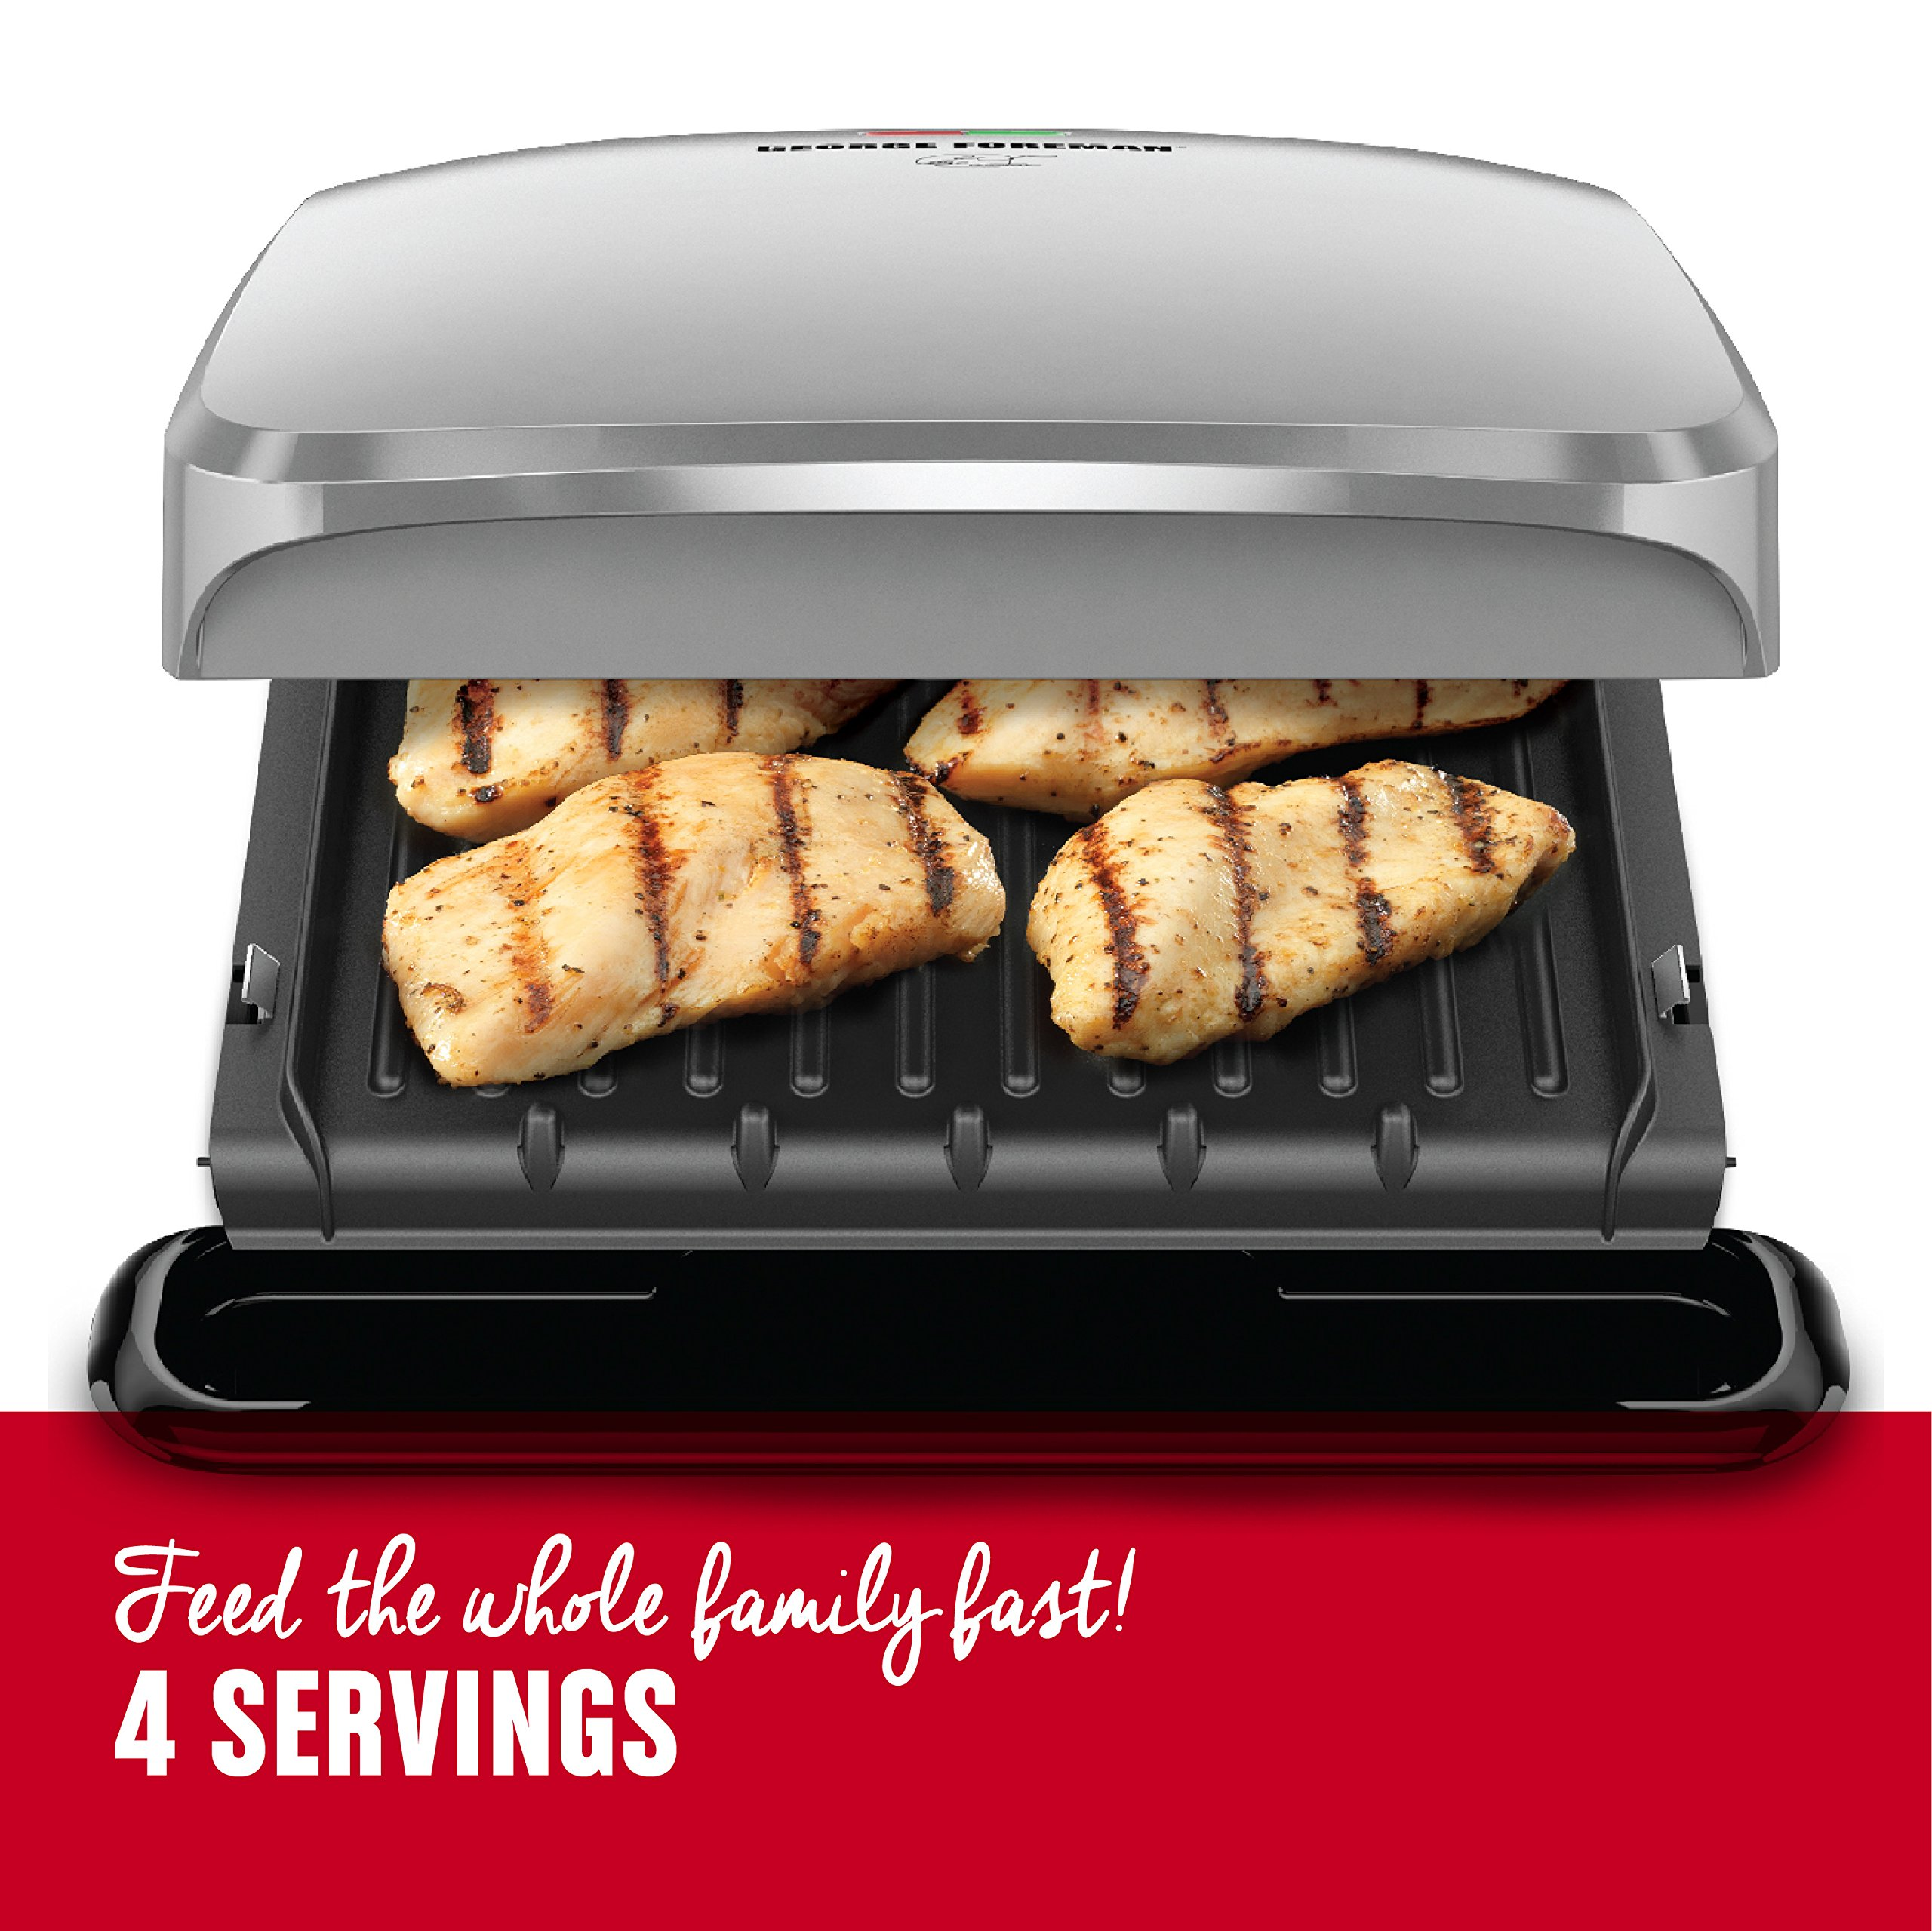 George Foreman 4-Serving Removable Plate Grill and Panini Press, Platinum, GRP3060P by George Foreman (Image #3)